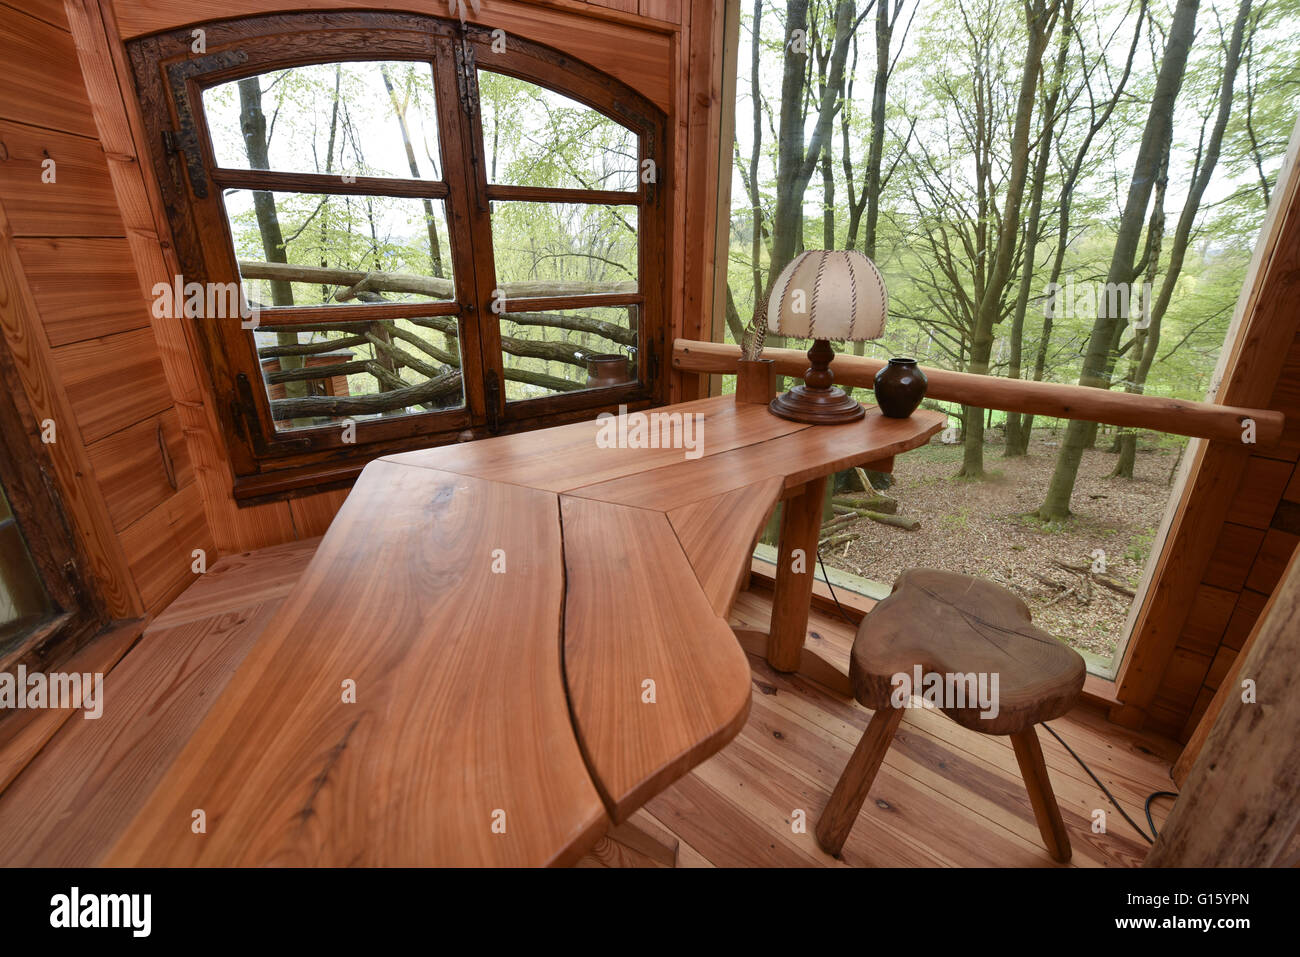 29th apr 2016 view of a wooden desk in the cork house of the tree house hostel located in a forest near witzenhausen germany 29 april 2016 photo - Cork House 2016